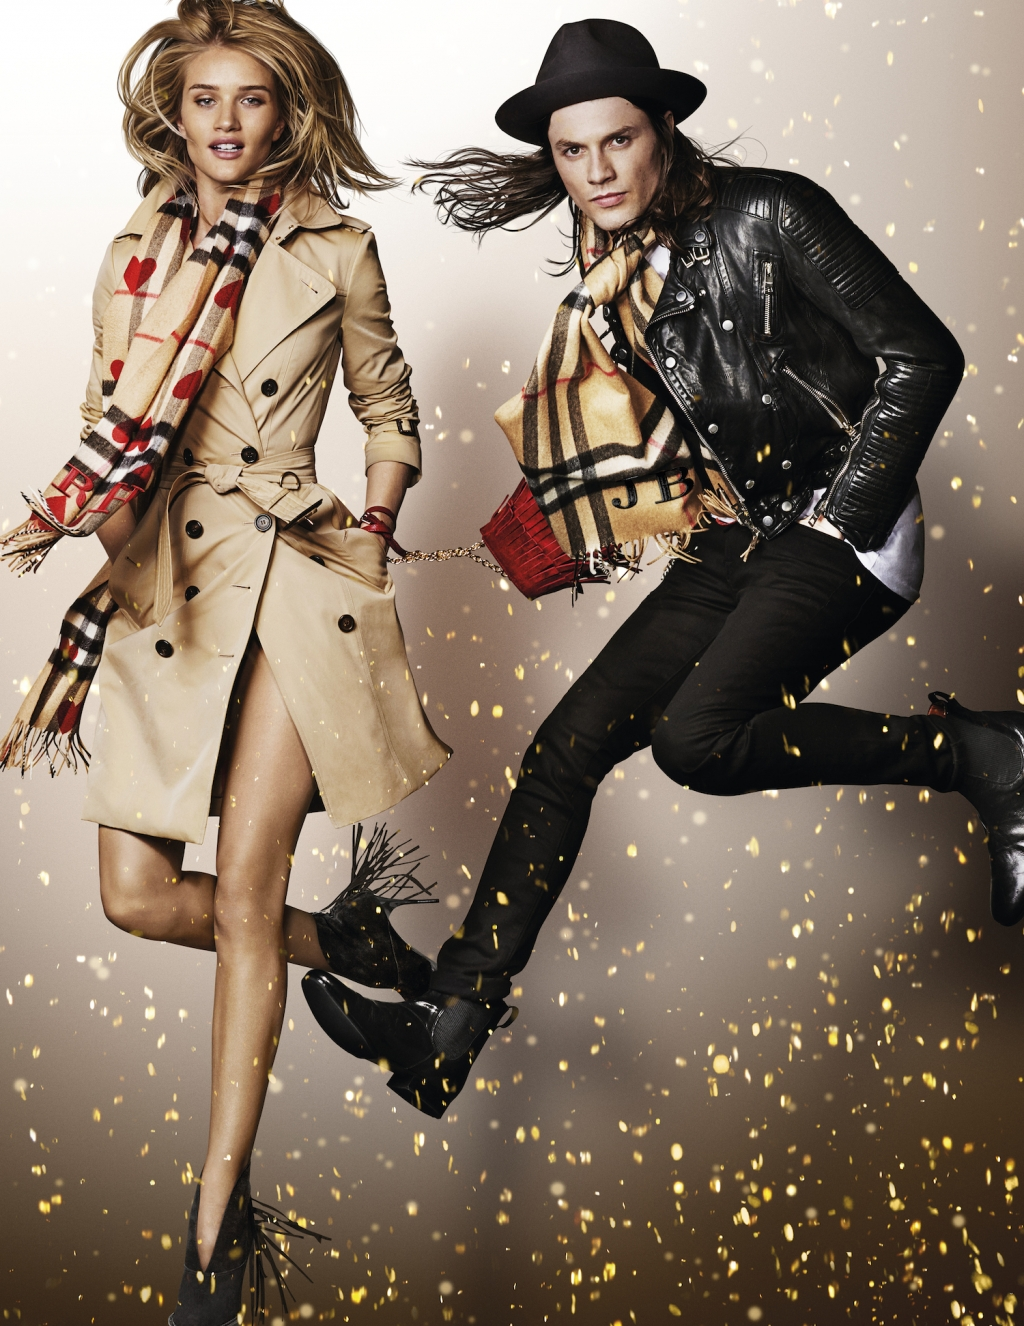 ROSIE_HUNTINGTON_WHITELEY_AND_JAMES_BAY_IN_THE_BURBERRY_FESTIVE_CAMPAIGN___SHOT_BY_MARIO_TESTINO